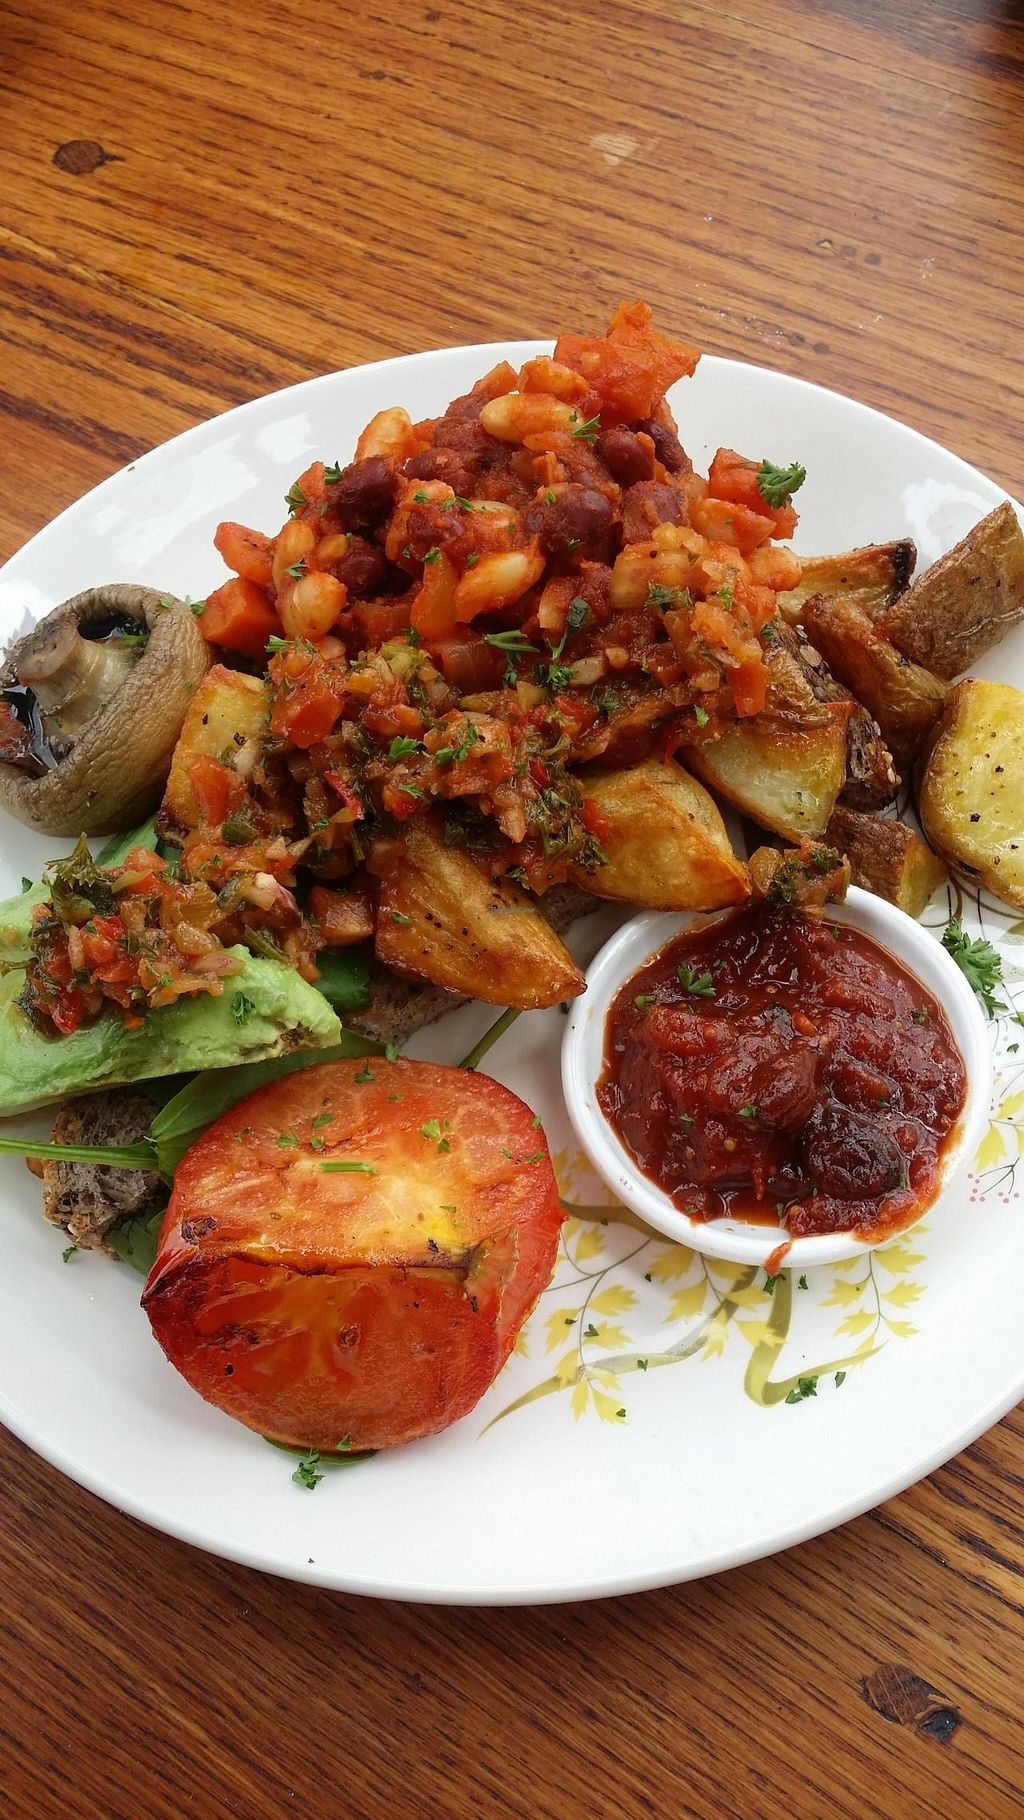 """Photo of The Shroom Room  by <a href=""""/members/profile/misstracee"""">misstracee</a> <br/>vegan breakfast plate <br/> December 4, 2014  - <a href='/contact/abuse/image/53106/87221'>Report</a>"""